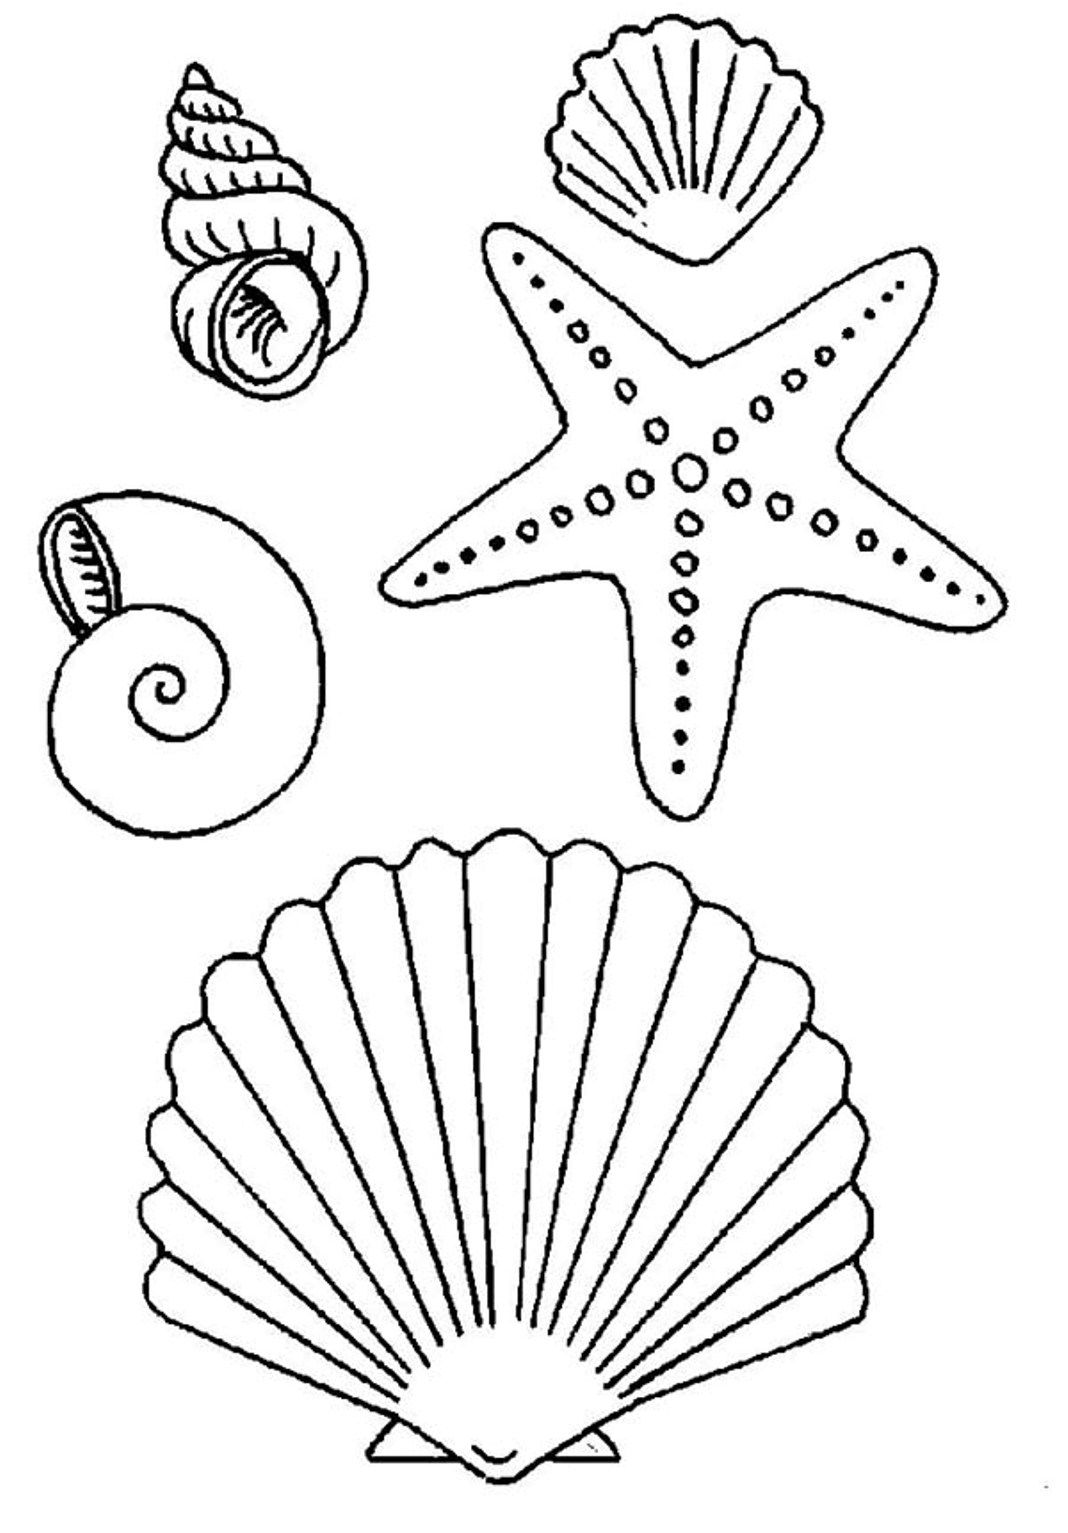 Egg Shell Coloring Page Shellfish Are Aquatic Animals Including Soft Bodied Animals Mollusks All Shells Have A Pair Of Shells Also Call Stensil Hitam Putih